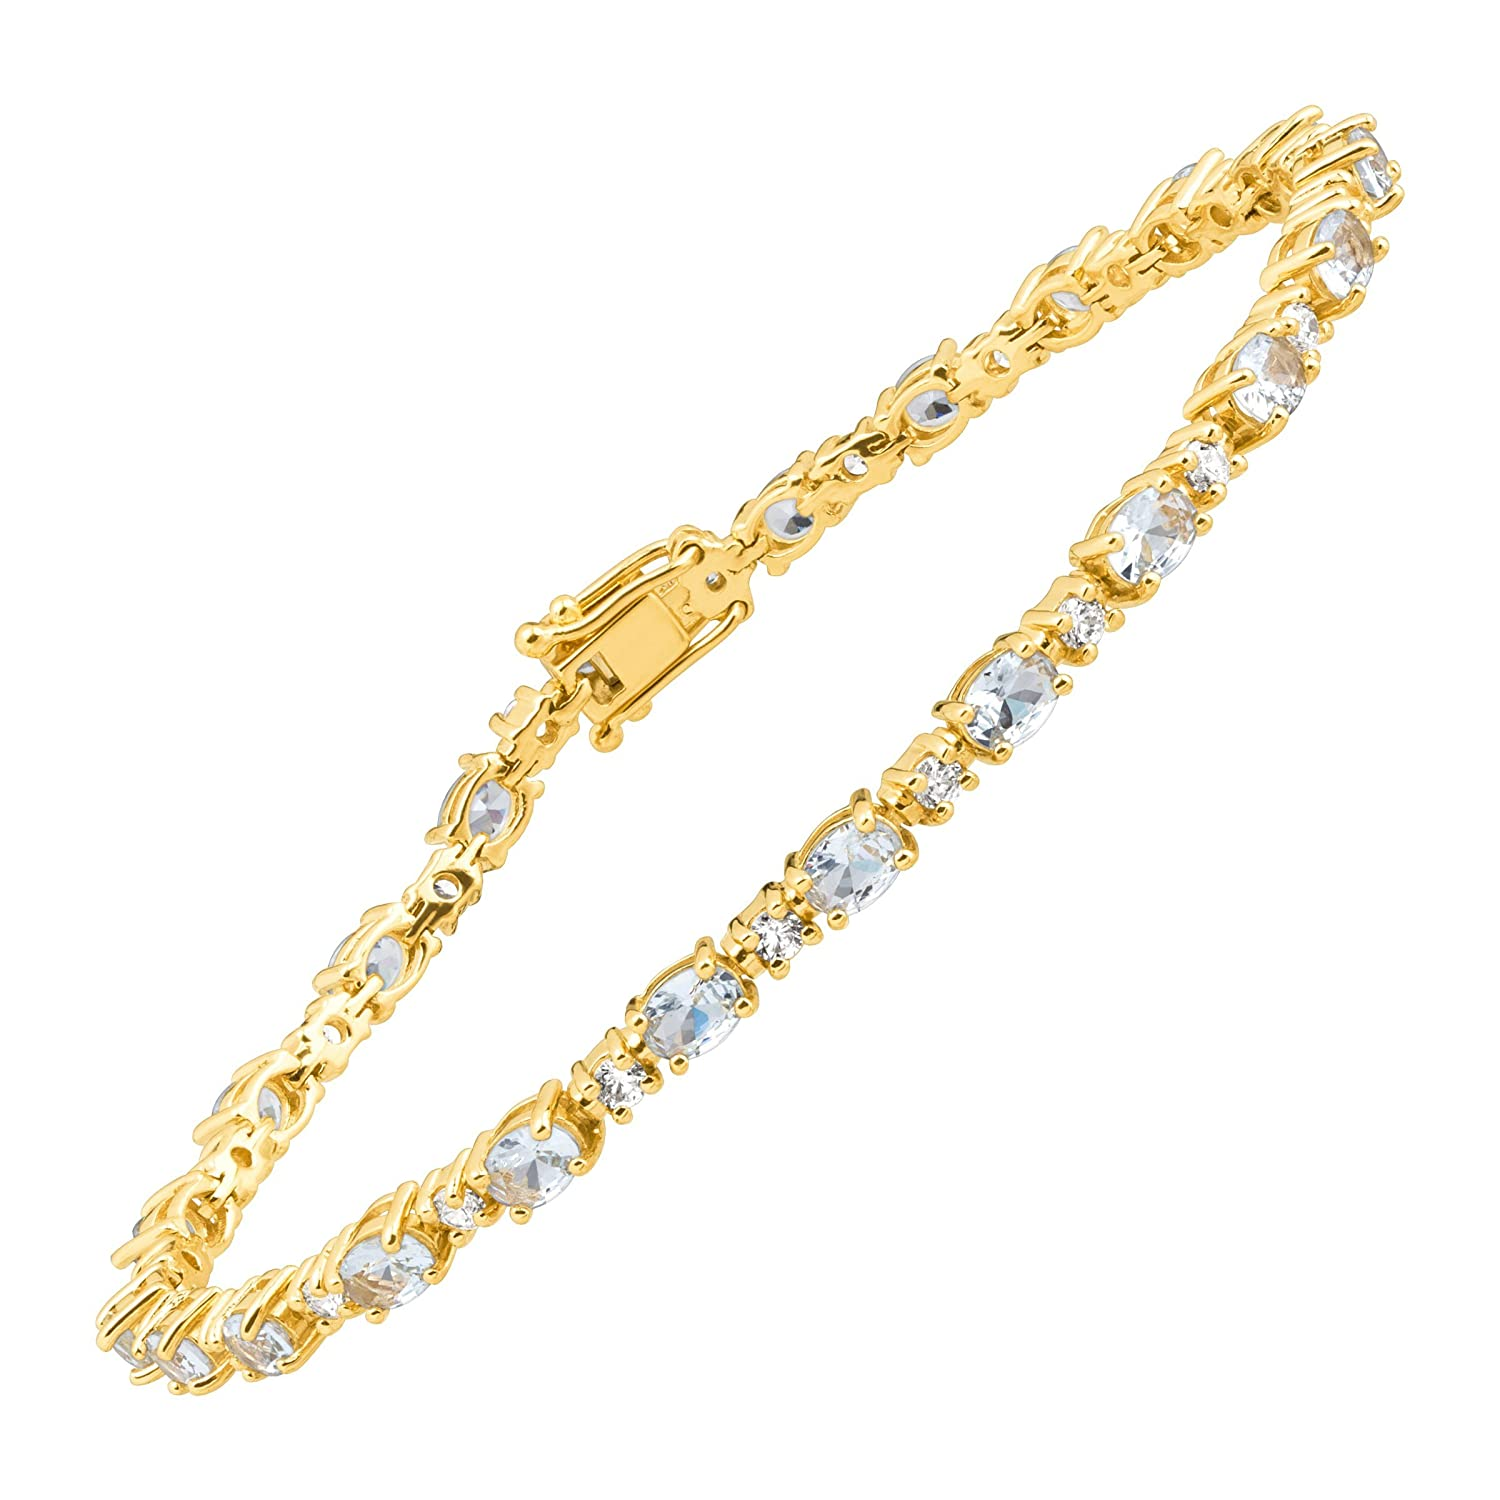 5 7/8 ct Simulated Aquamarine Tennis Bracelet with Cubic Zirconia in 14K Gold-Plated Sterling Silver